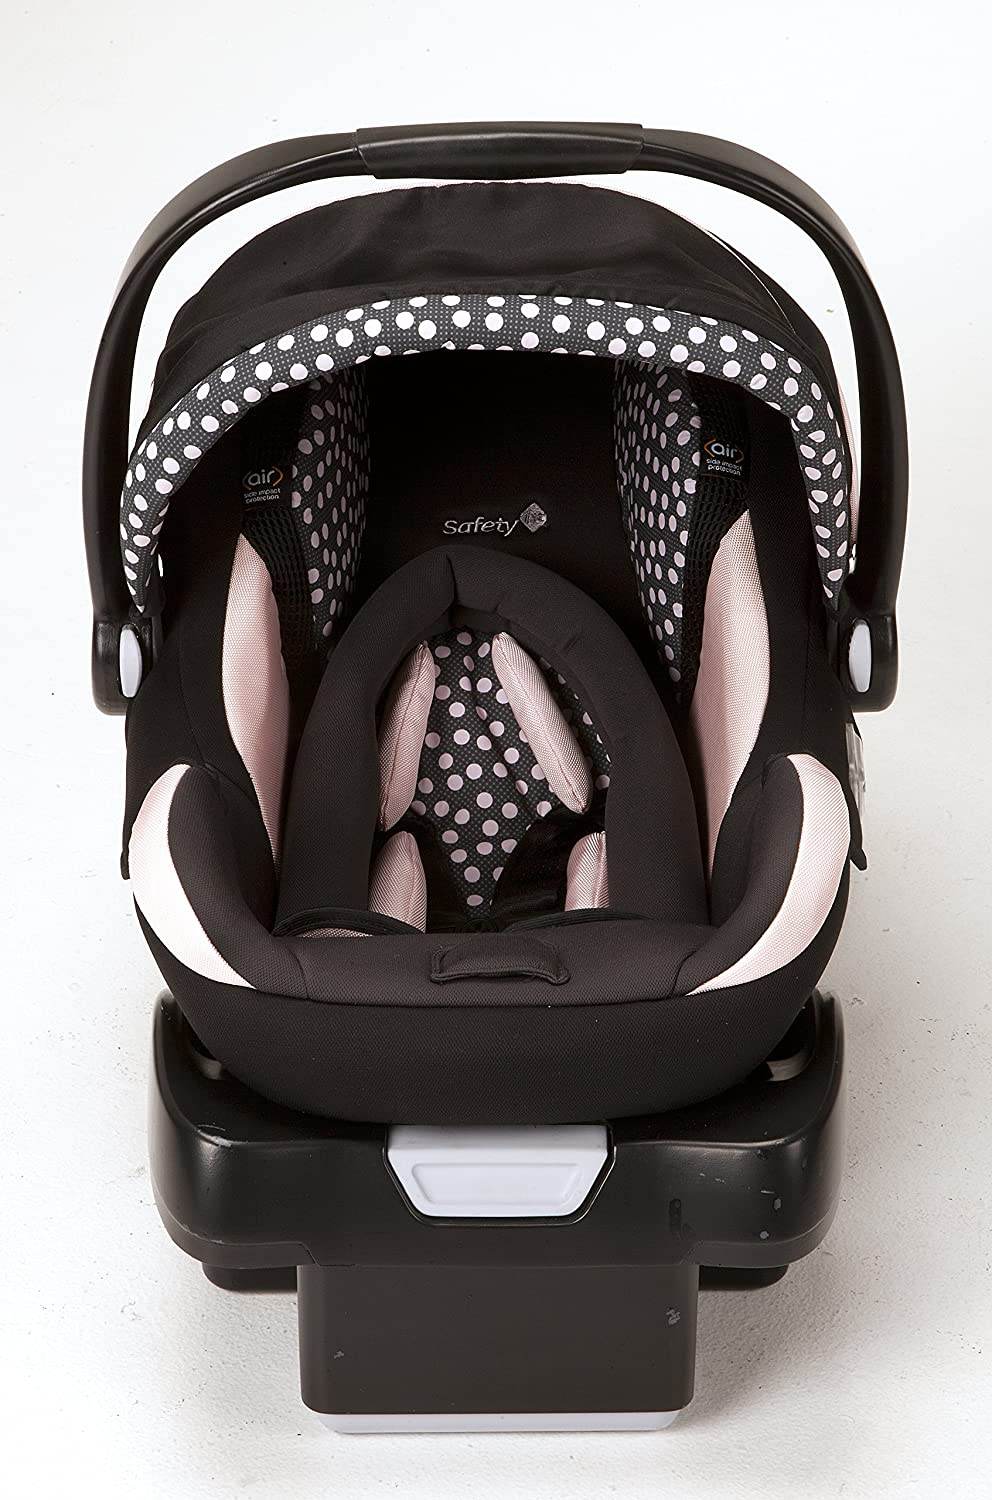 Amazon.com : Safety 1st Onboard 35 Air Infant Car Seat, Pink Pearl